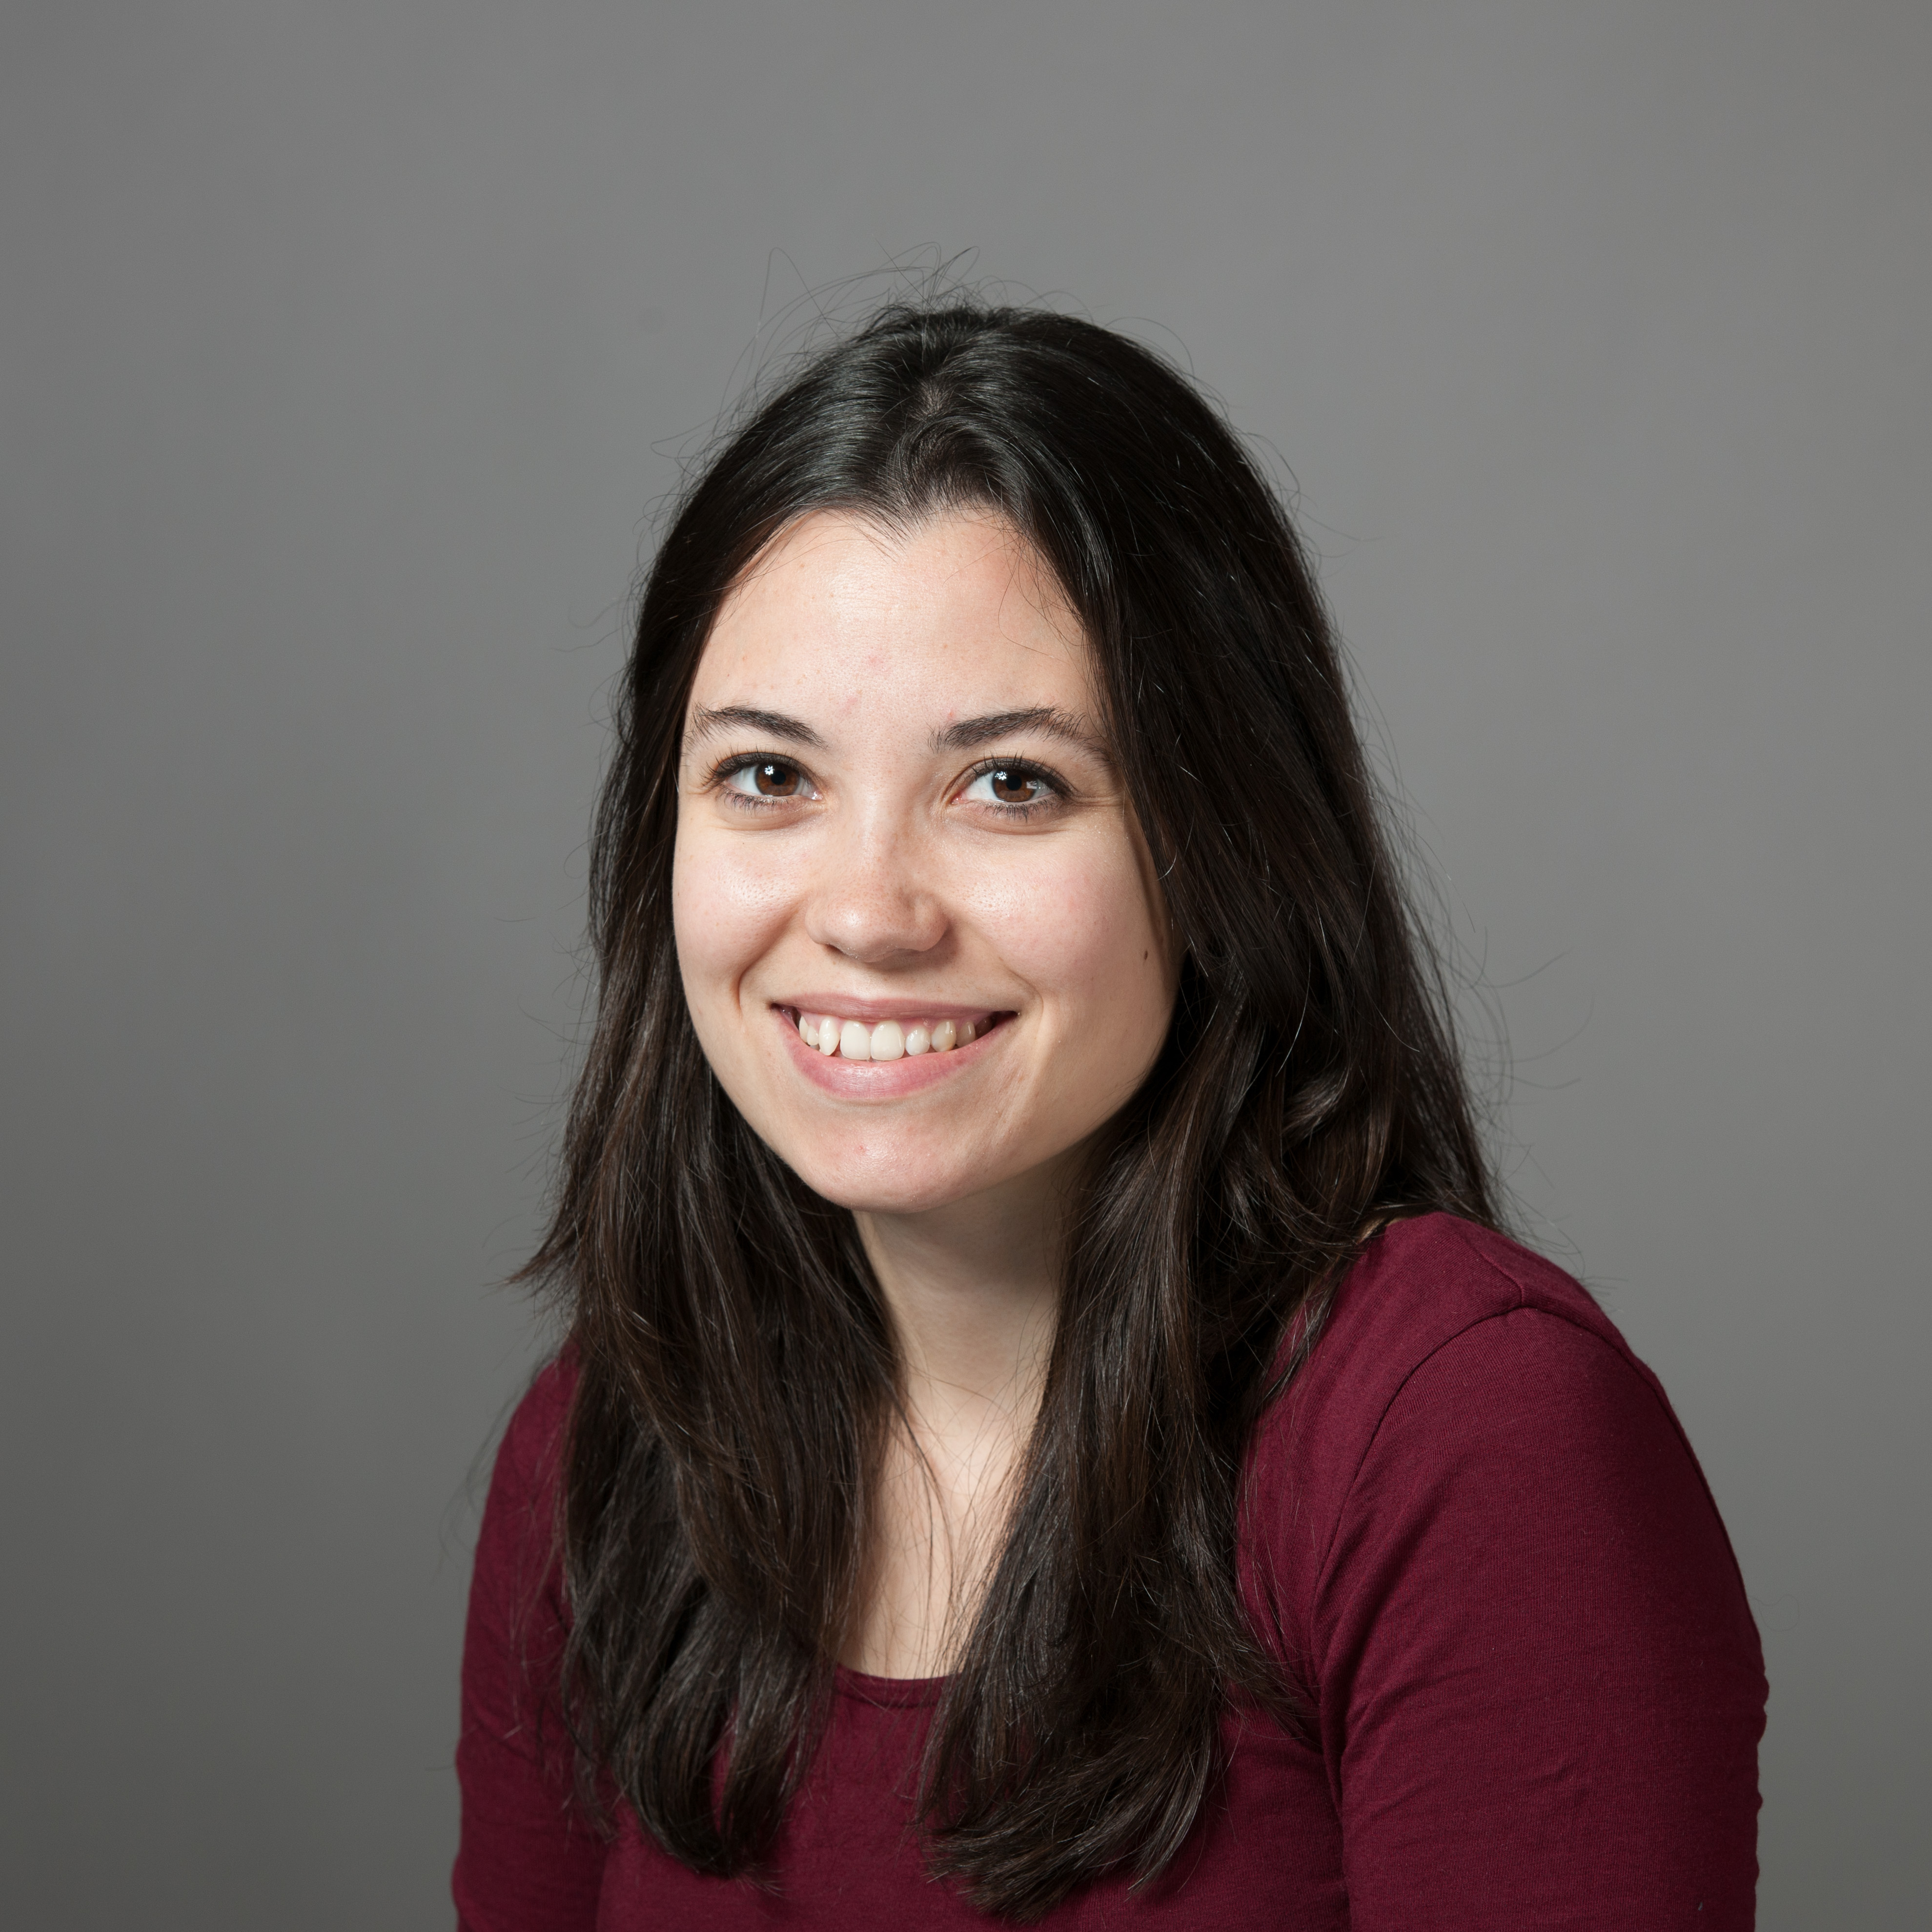 Photo of Patricia Ortega Ramos. Credit: Rothamsted Research